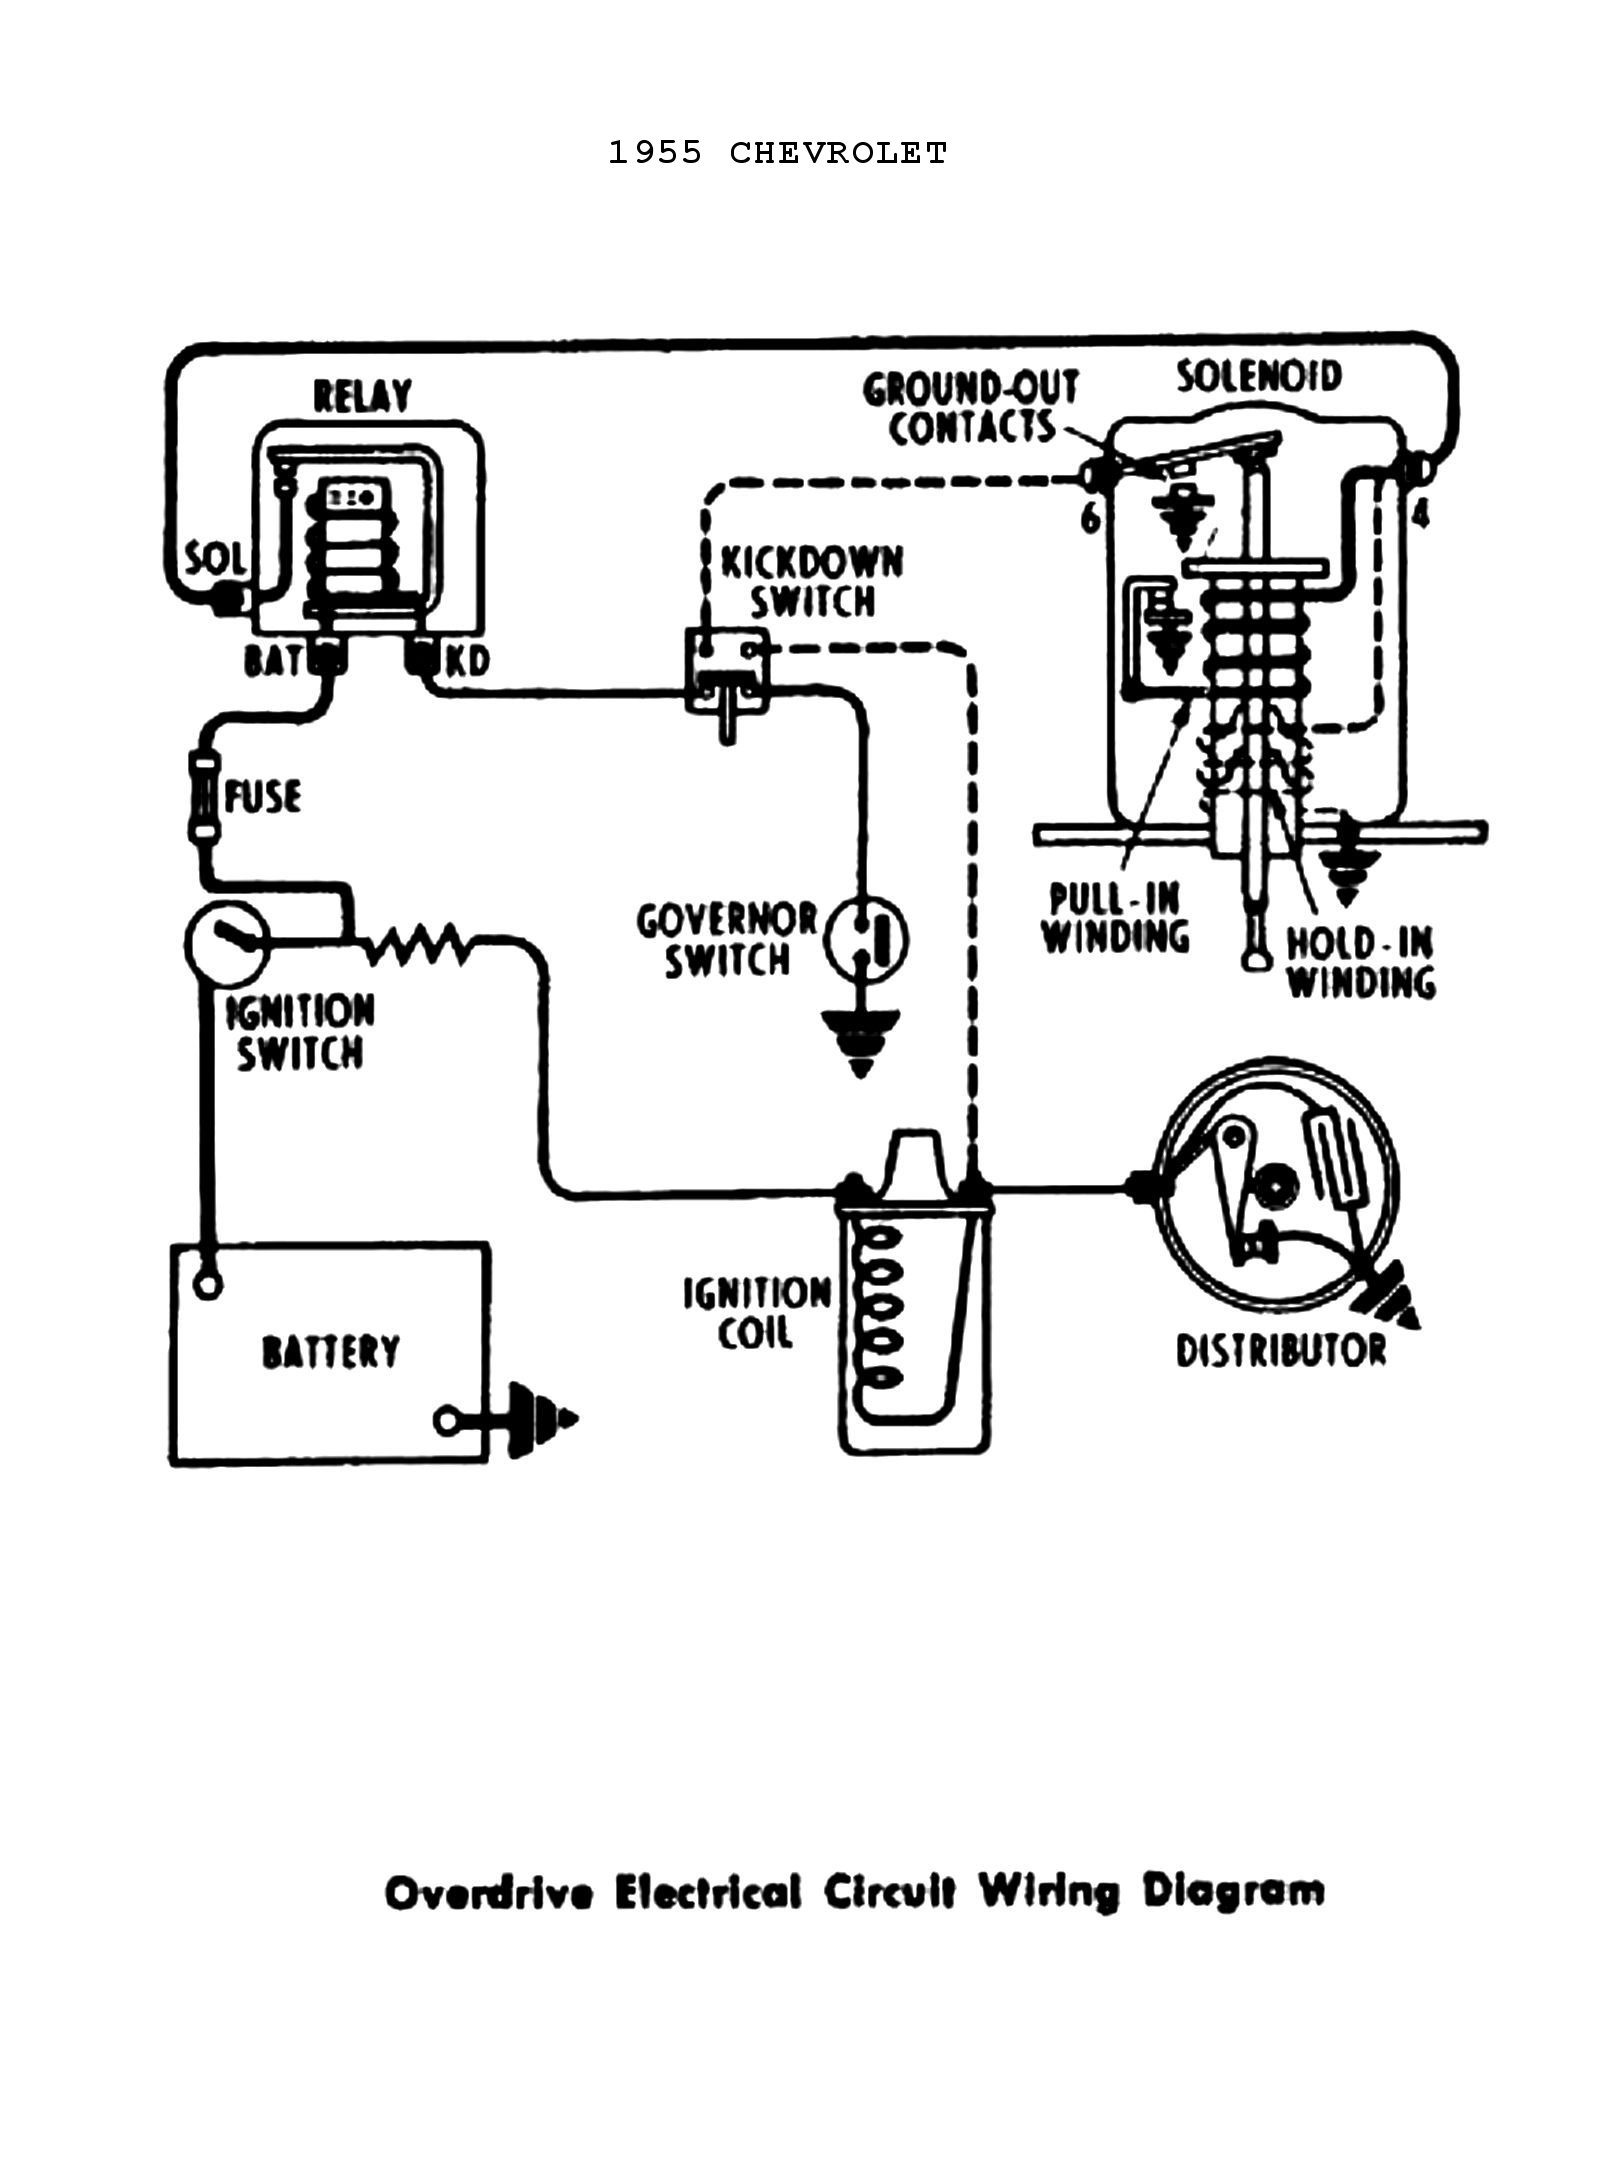 91 chevy coil wiring diagram trusted schematics wiring diagrams u2022 rh bestbooksrichtreasures com mercruiser 4.3 ignition coil wiring diagram